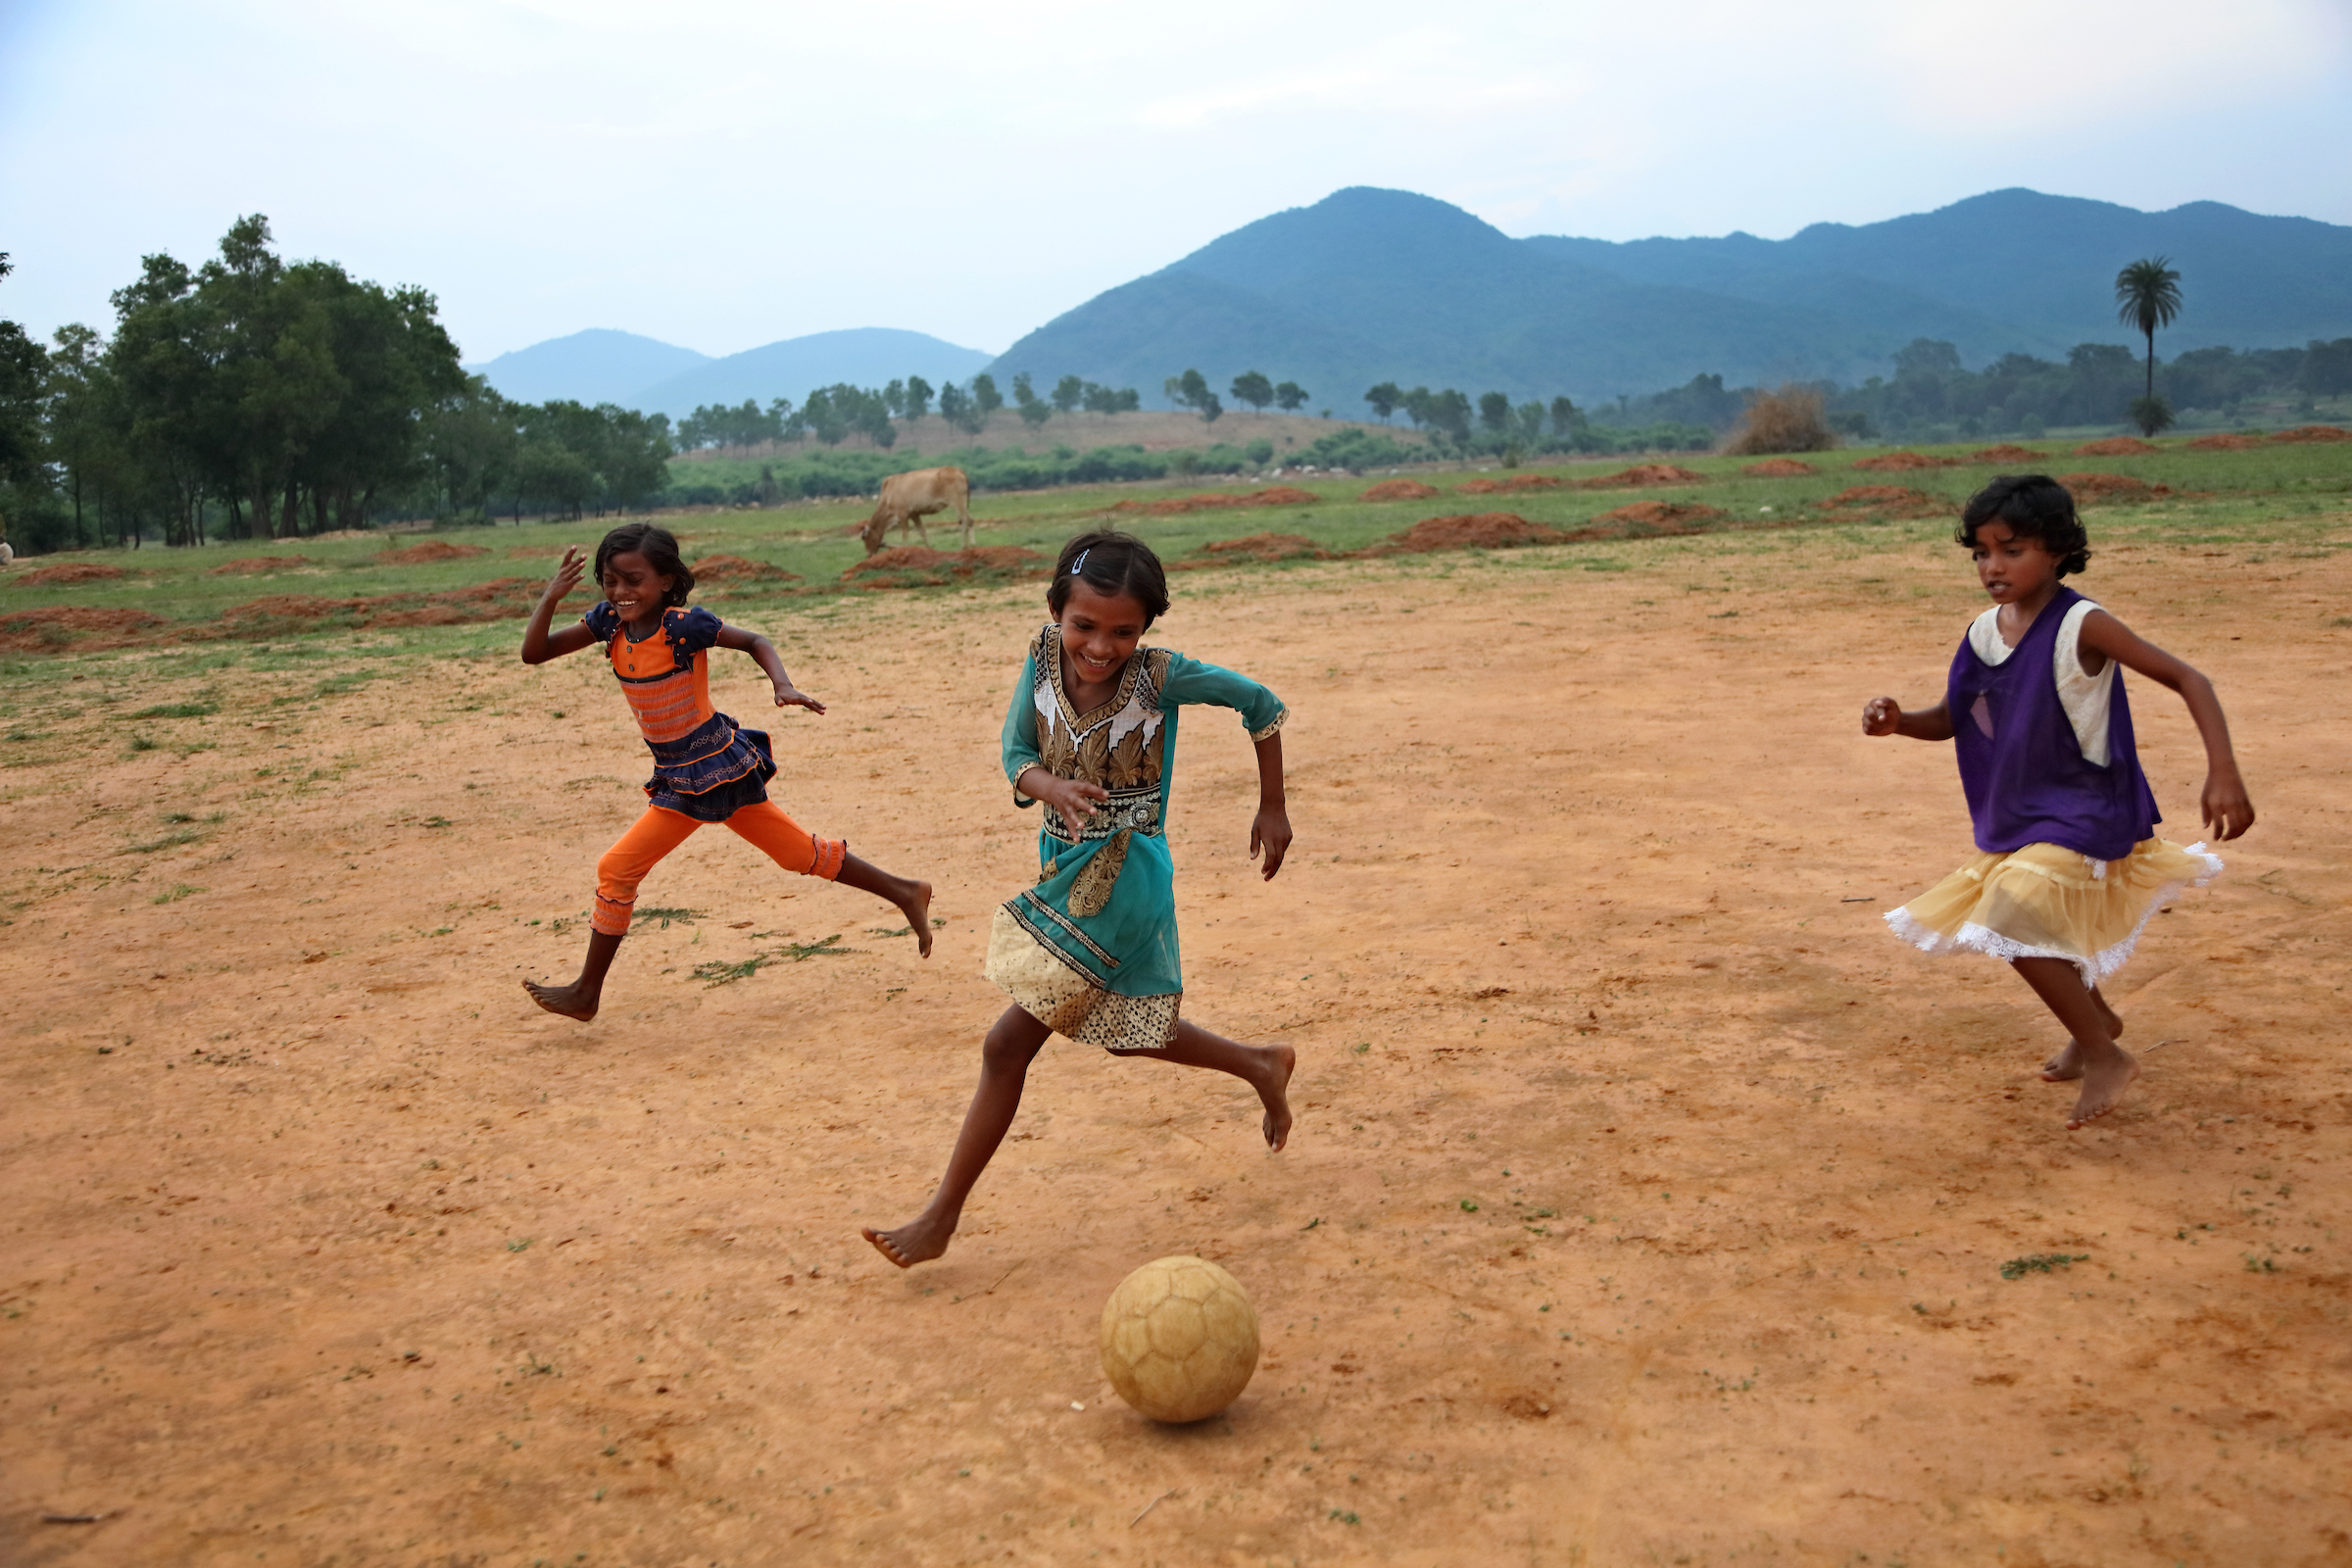 Girls enthusiastically participate in football practice after school as part of a program created by the nonprofit organization Yuwa India in Jharkhand